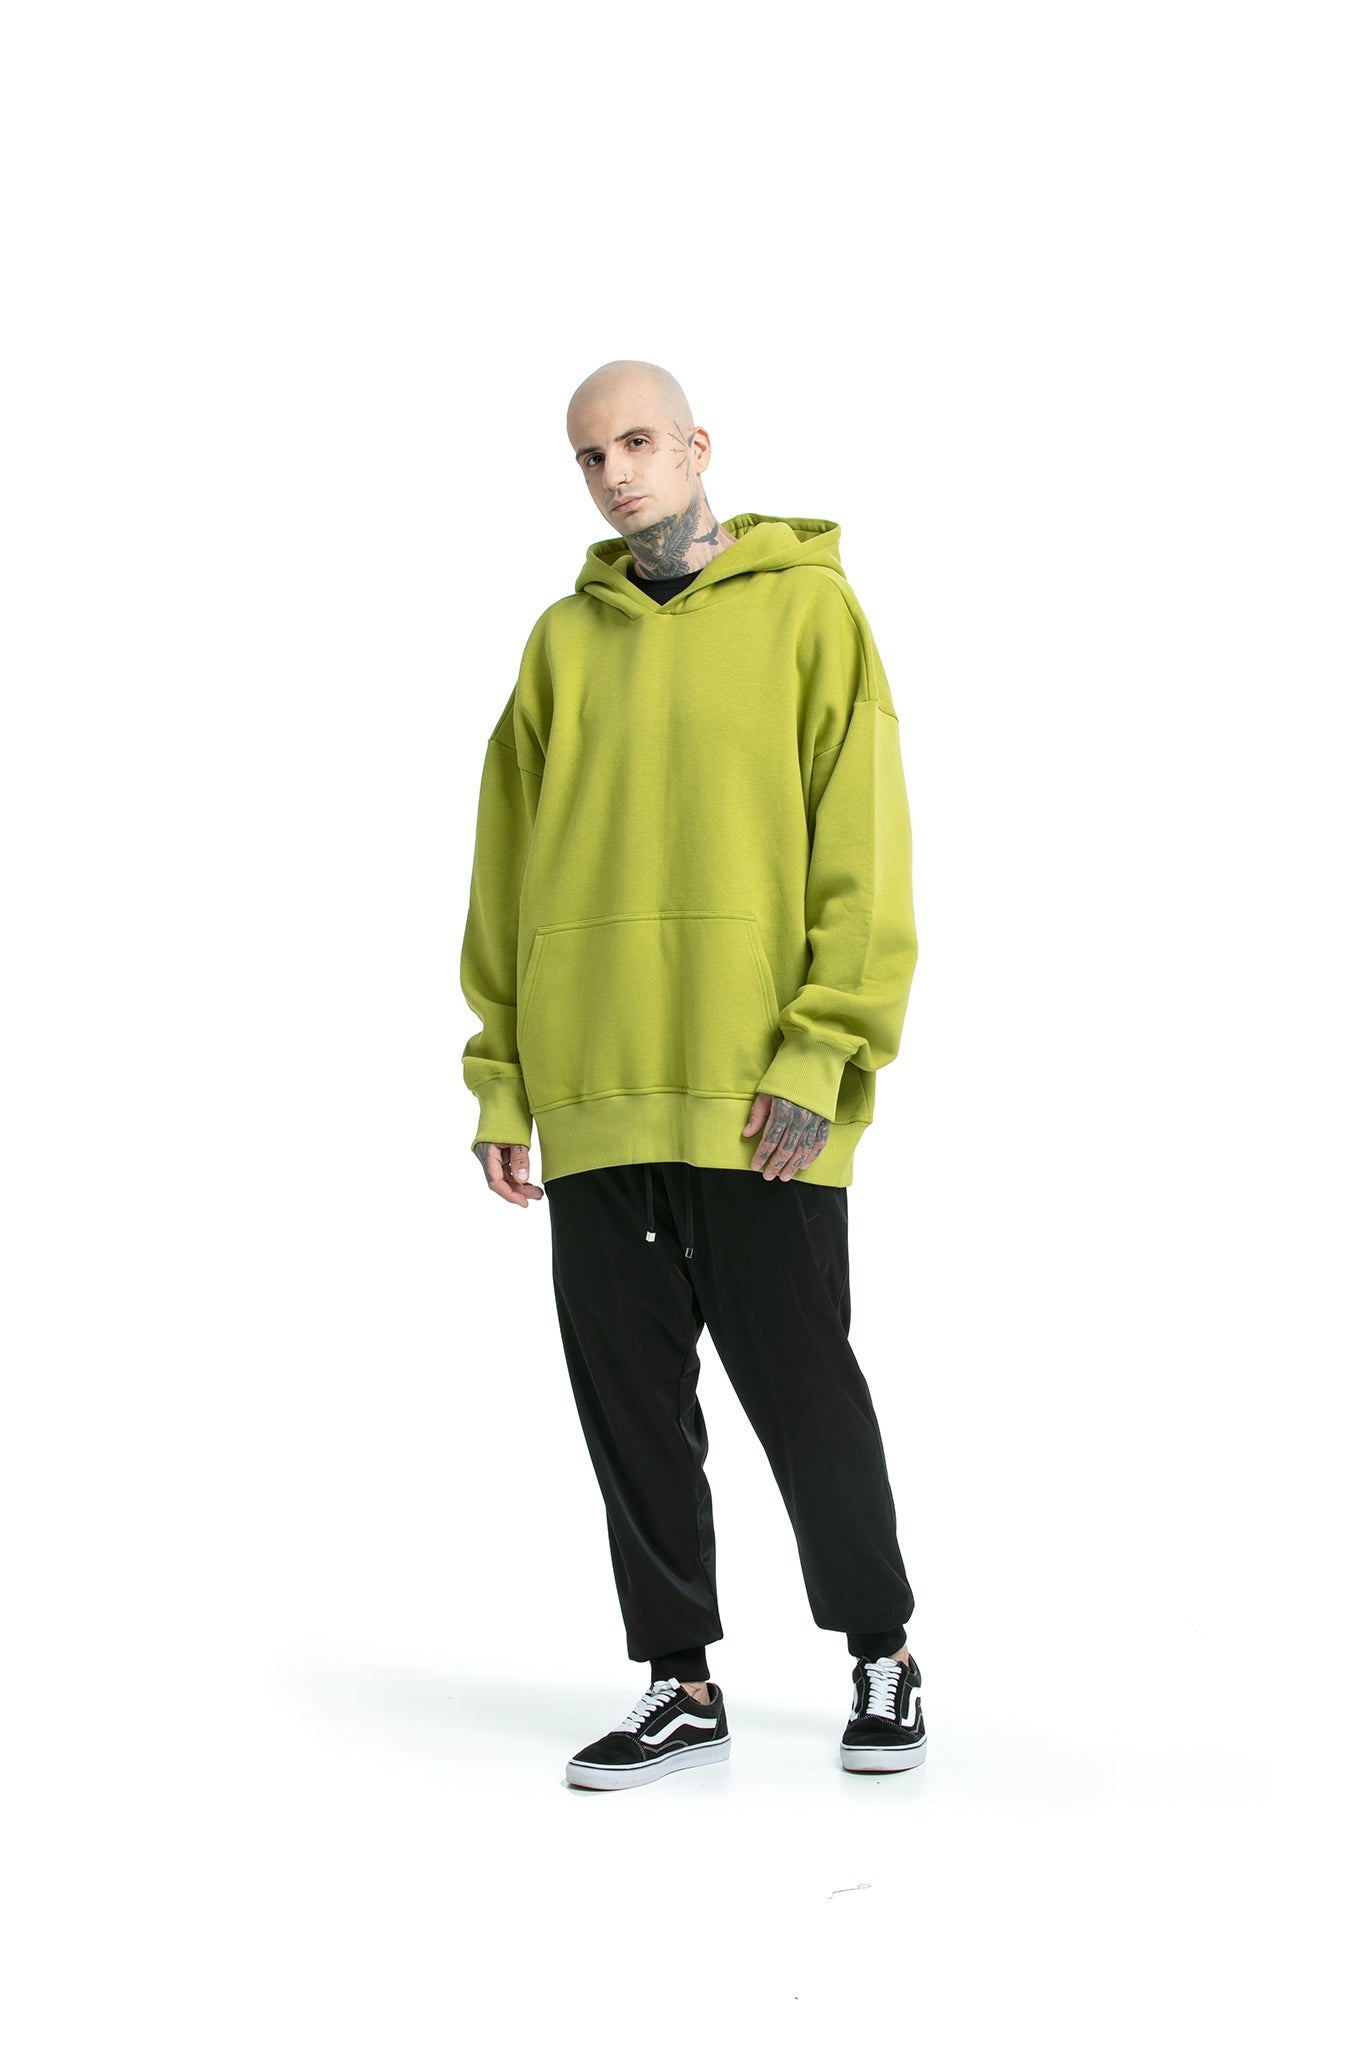 Super Oversized [Olive] Sweatshirts